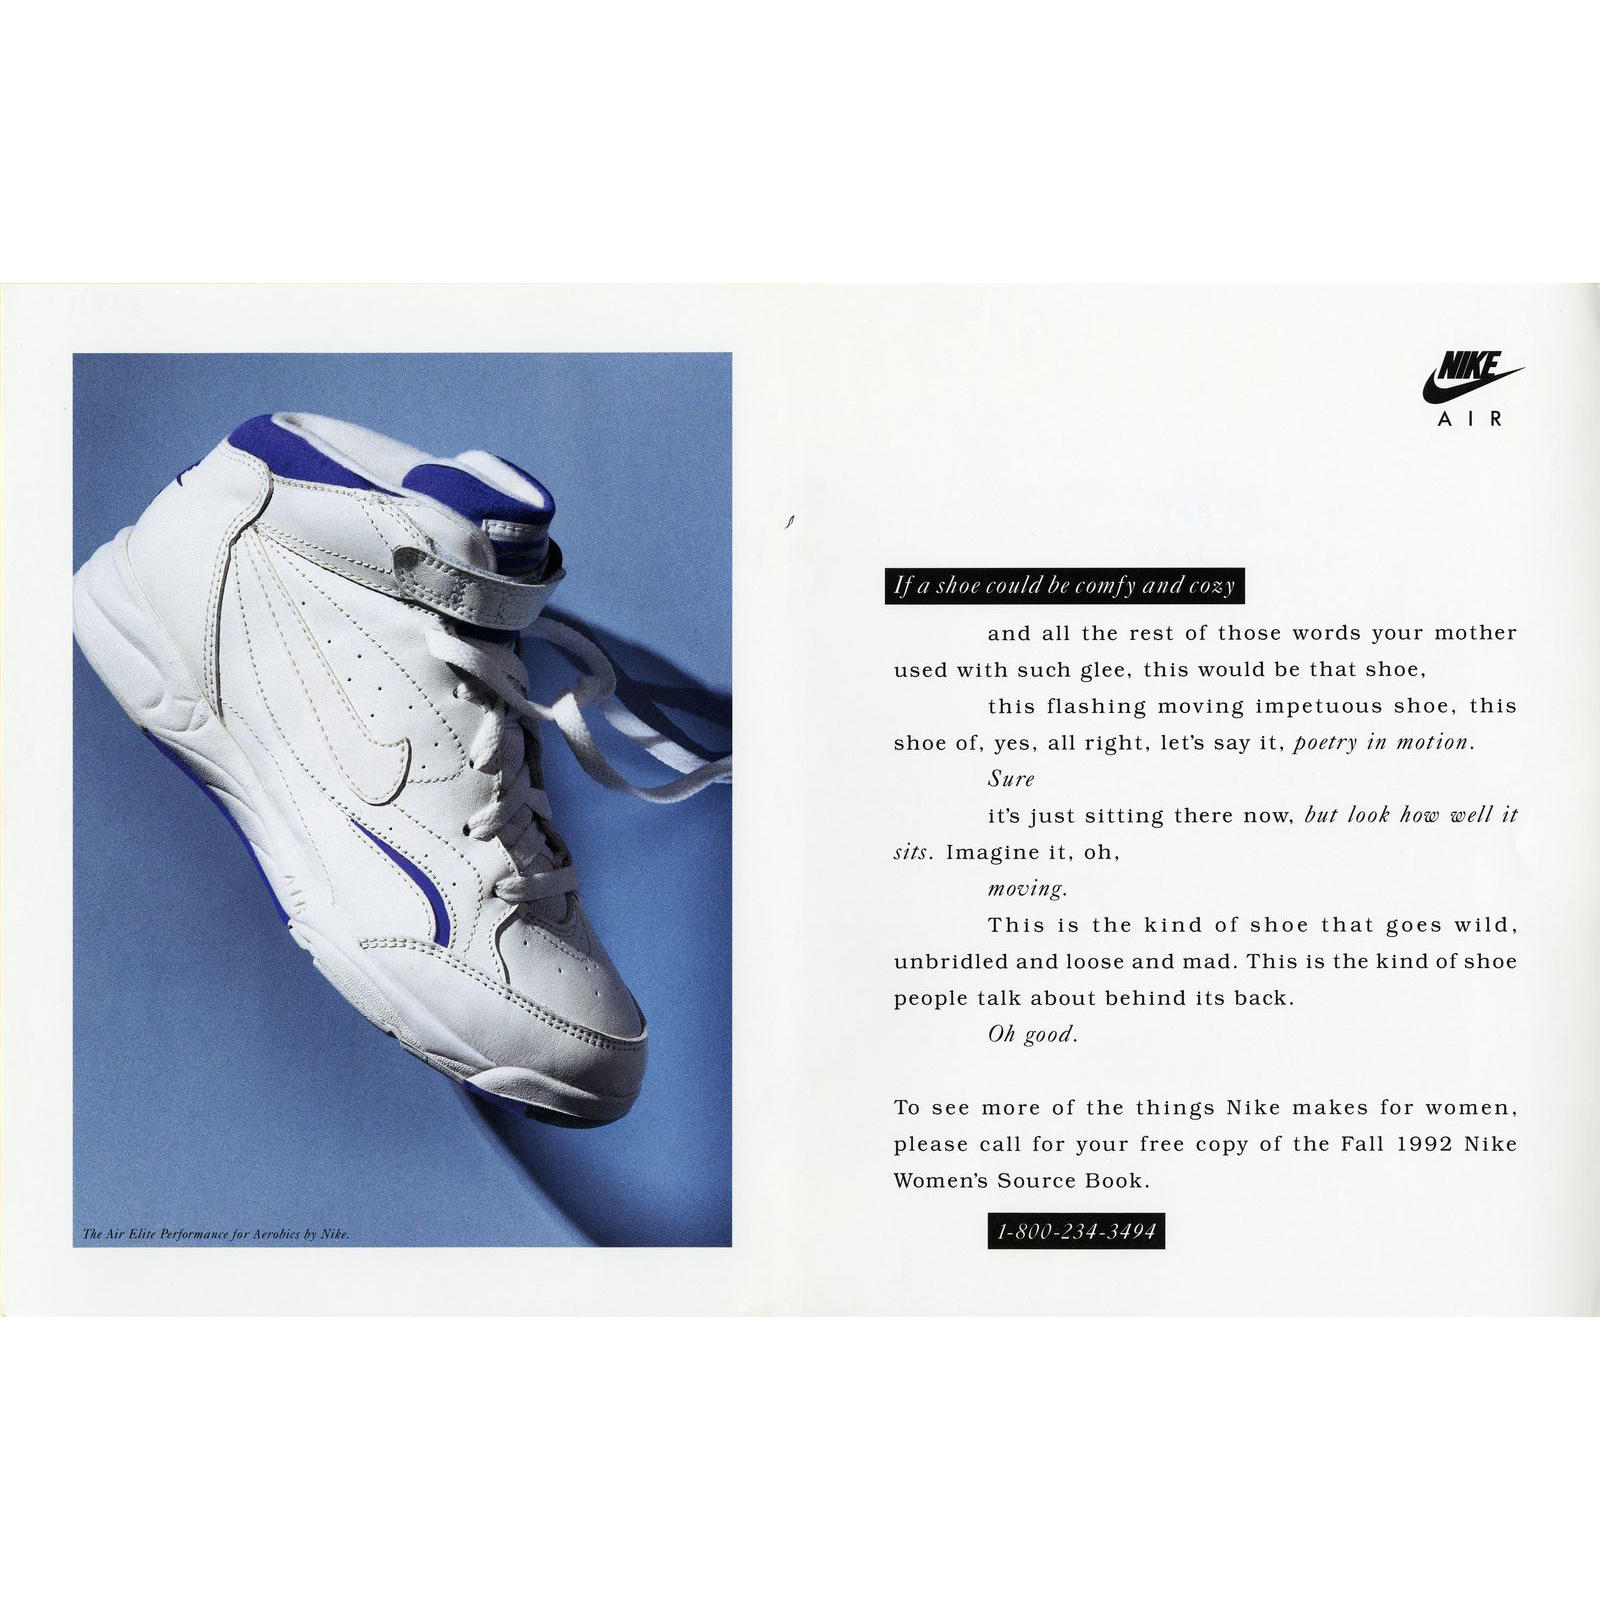 31c2814171870 Nike Puts Women Front and Center for 40 Years and Counting - Nike News